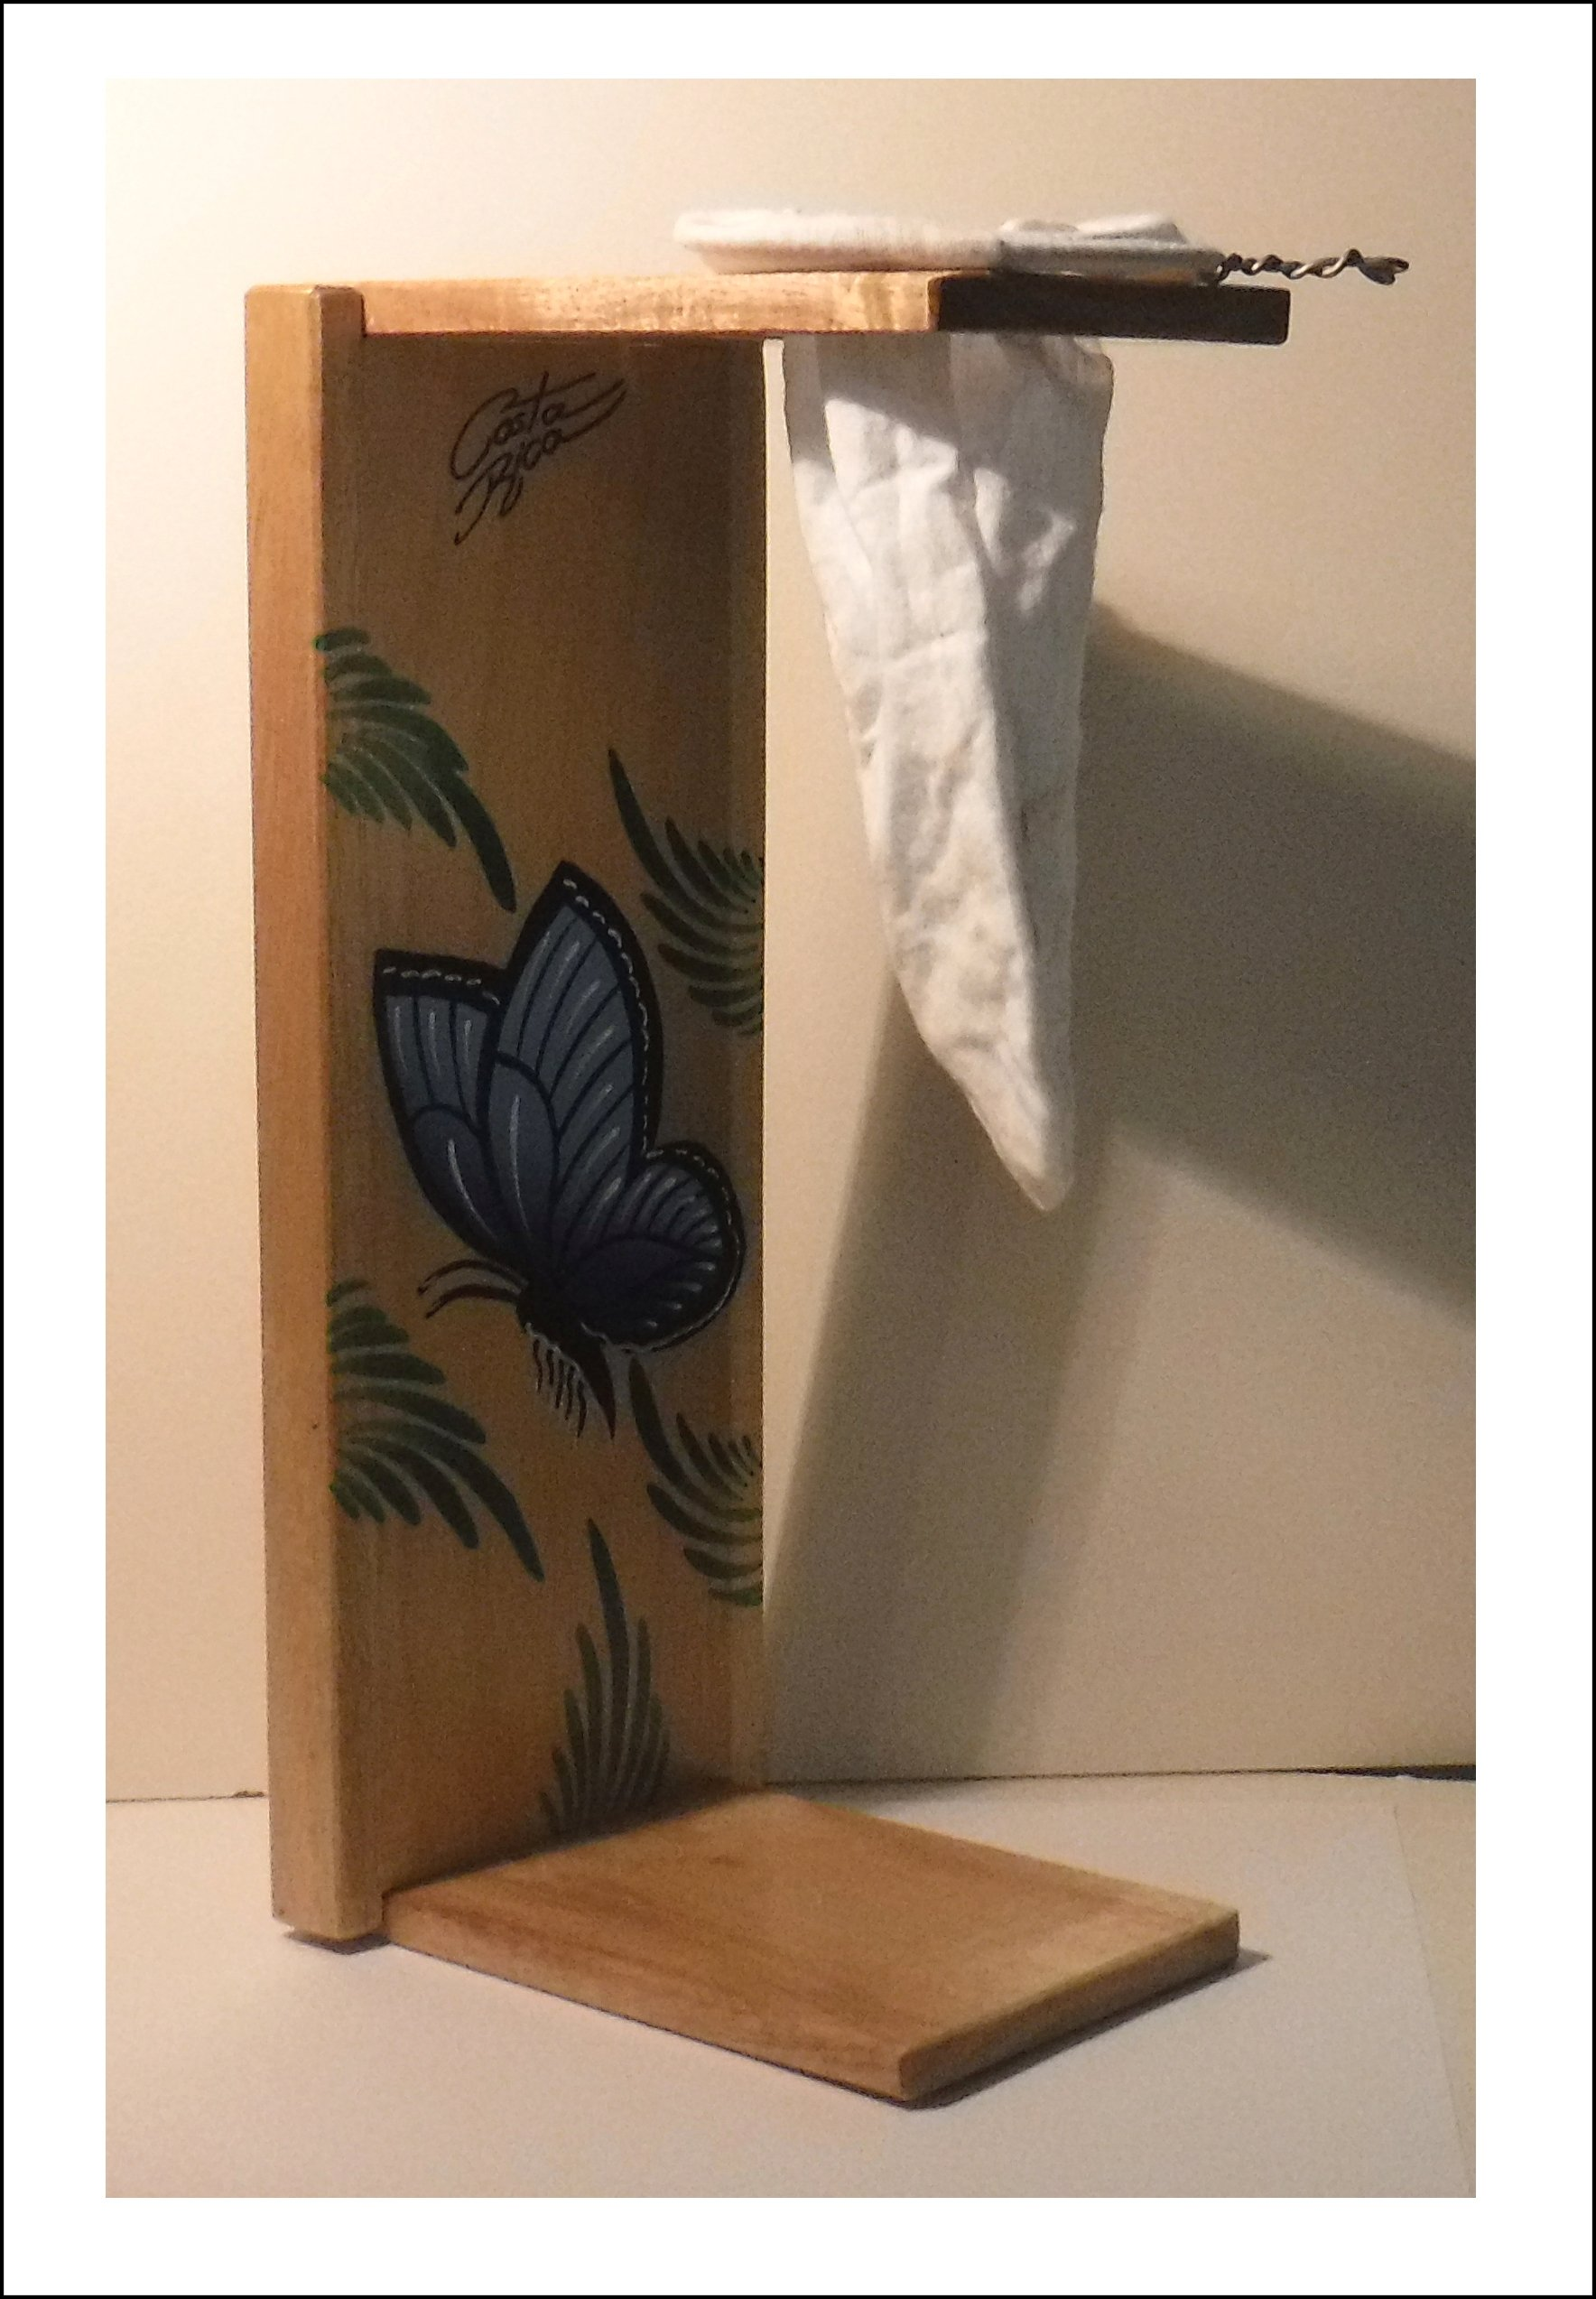 Chorreador,Costa Rican Handmade Portable Foldable Wooden Stand Coffee Maker,Included:1 Large Reusable Cloth Filter(Bolsa de Chorrear Cafe),Model:Blue Morpho Butterfly, Color:Light, Wood: Gmelina by Love Gourmet Coffee (Image #7)